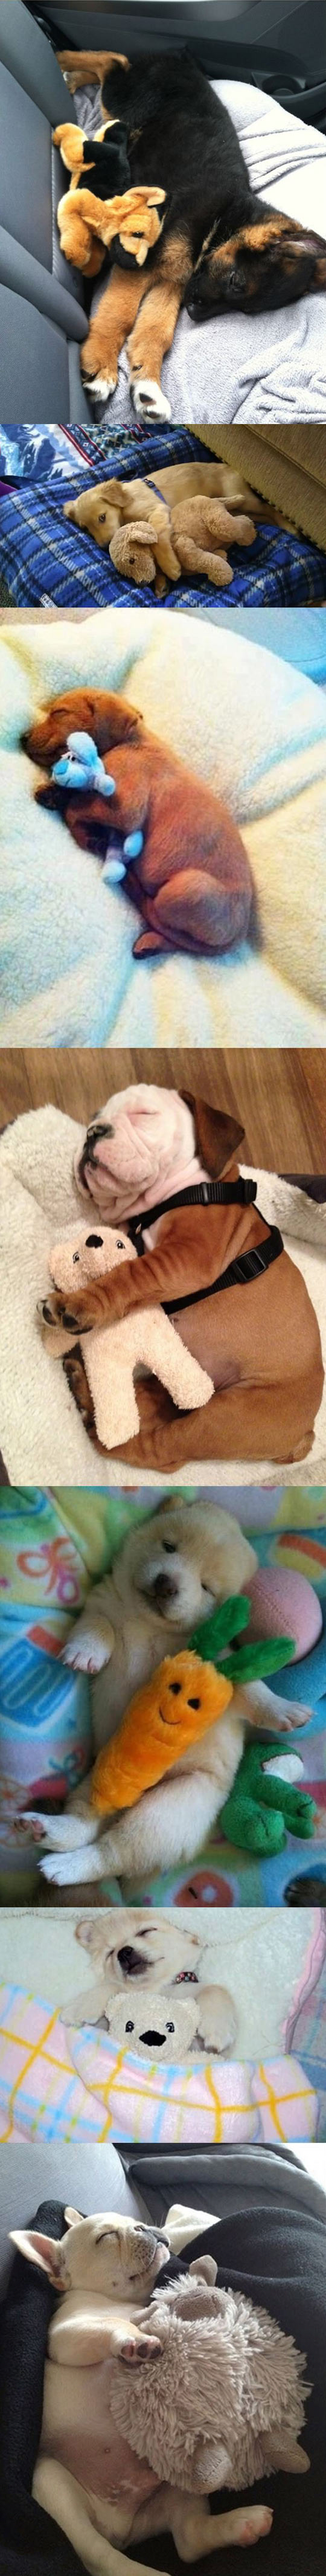 funny-picture-cute-puppy-sleeping-toys-bulldog